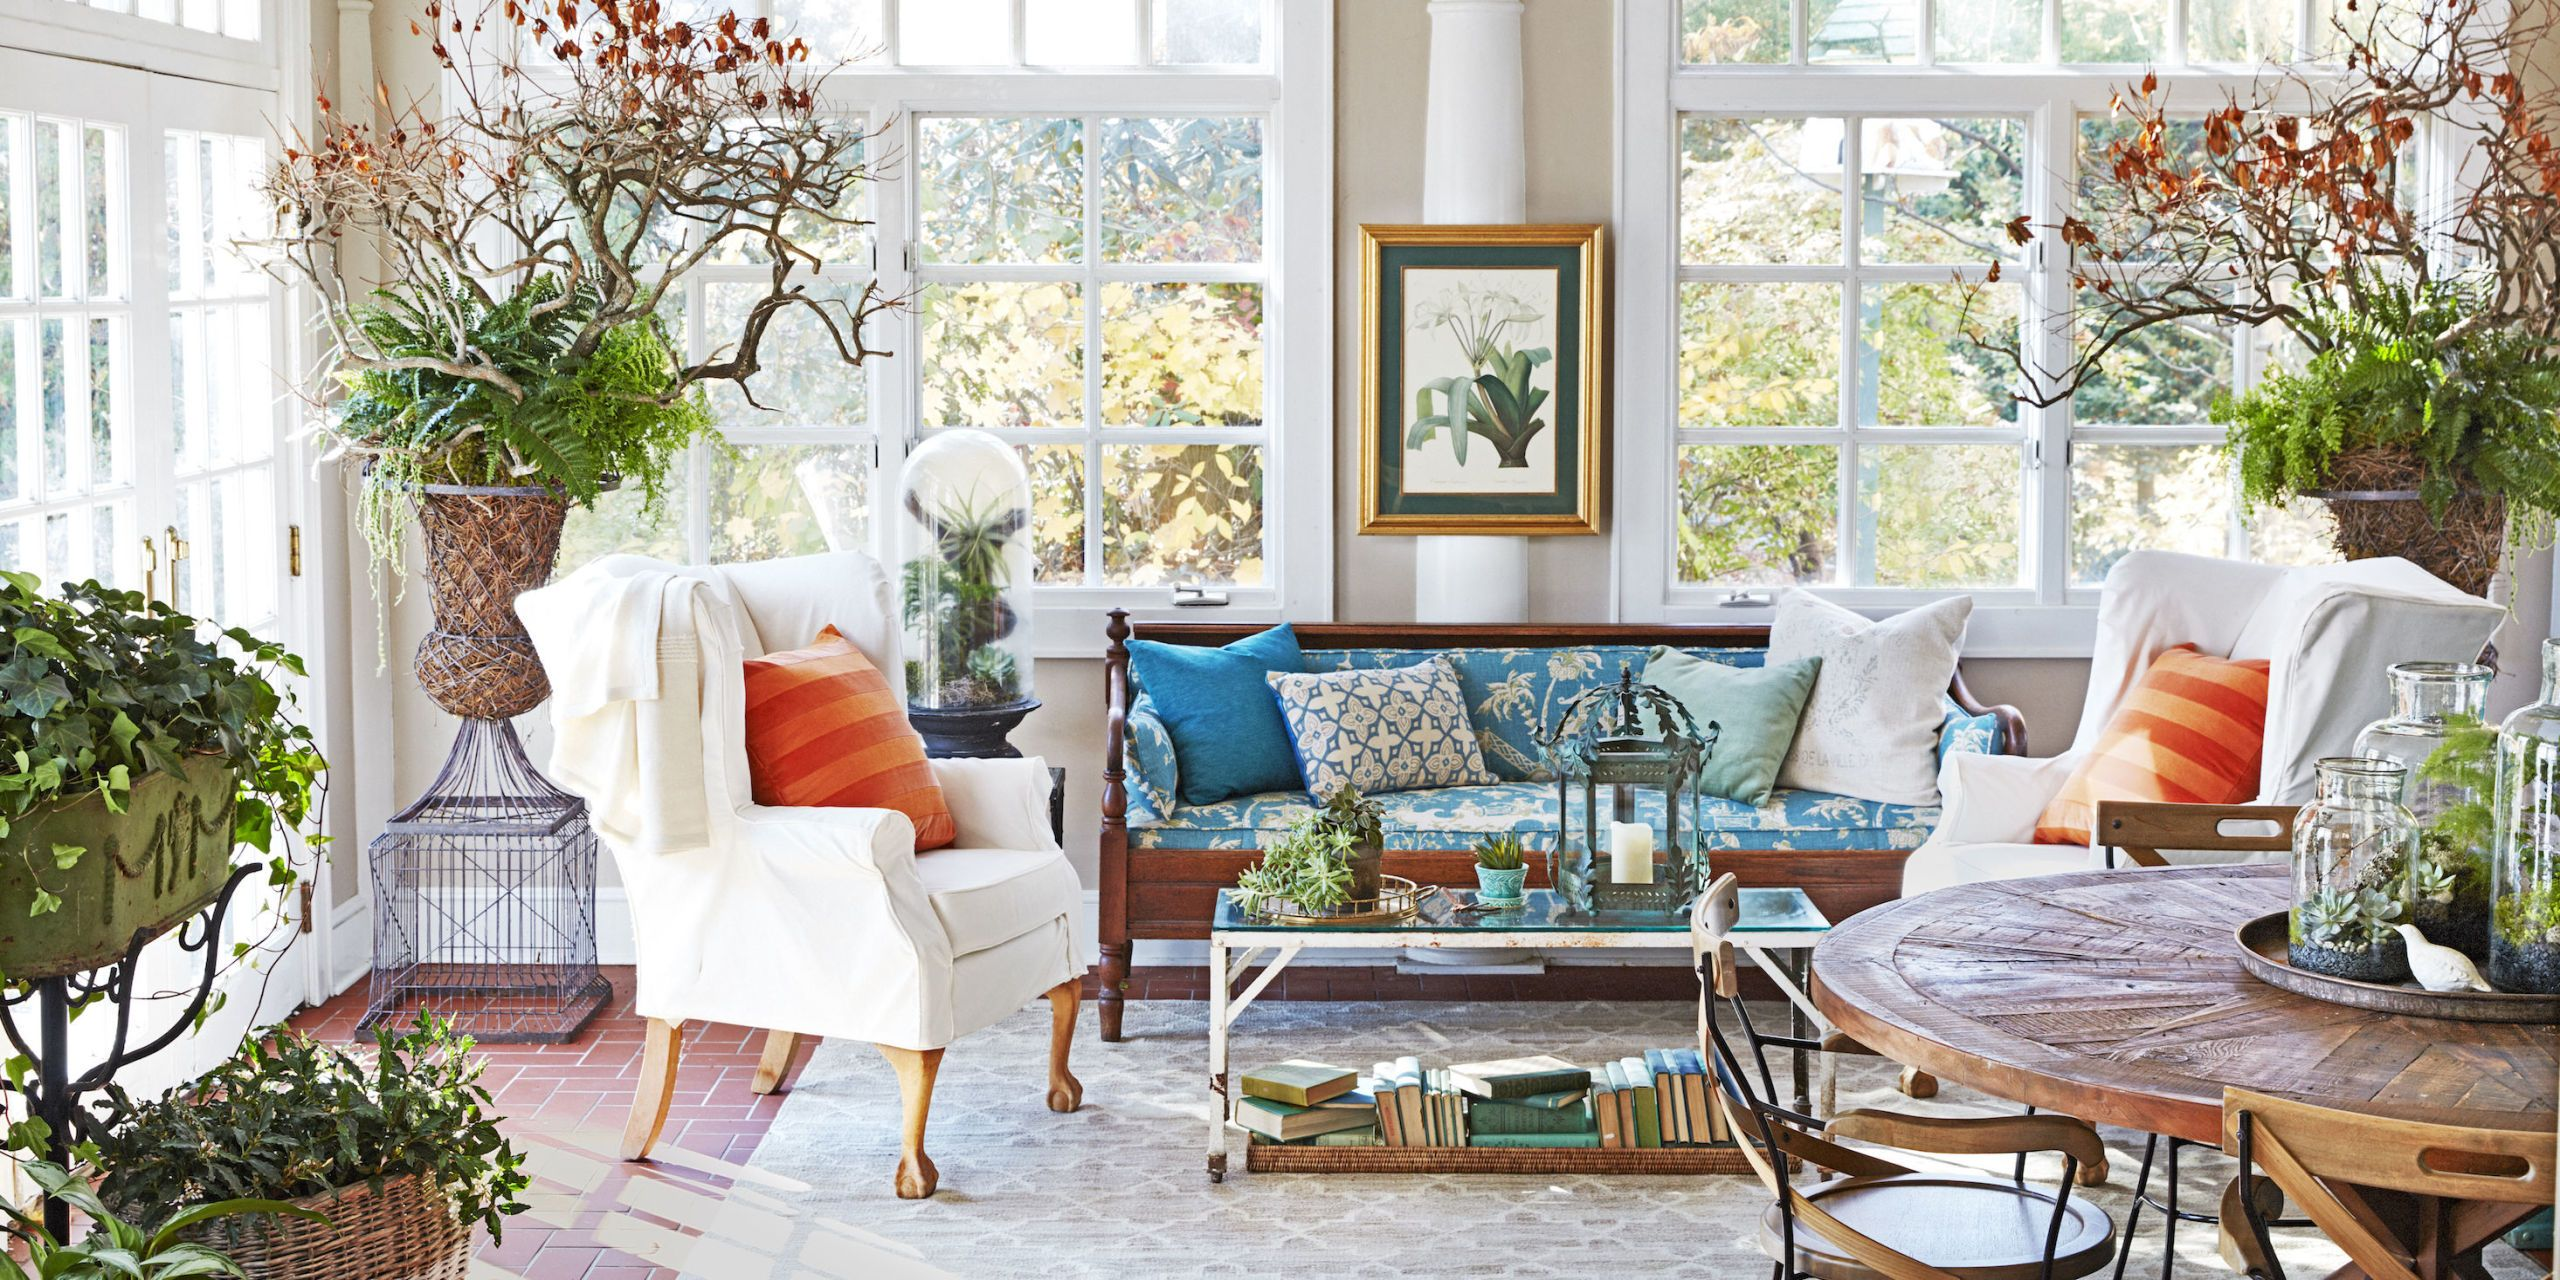 10 sunroom decorating ideas best designs for sun rooms rh goodhousekeeping com sunroom pictures designs sunroom interior design ideas